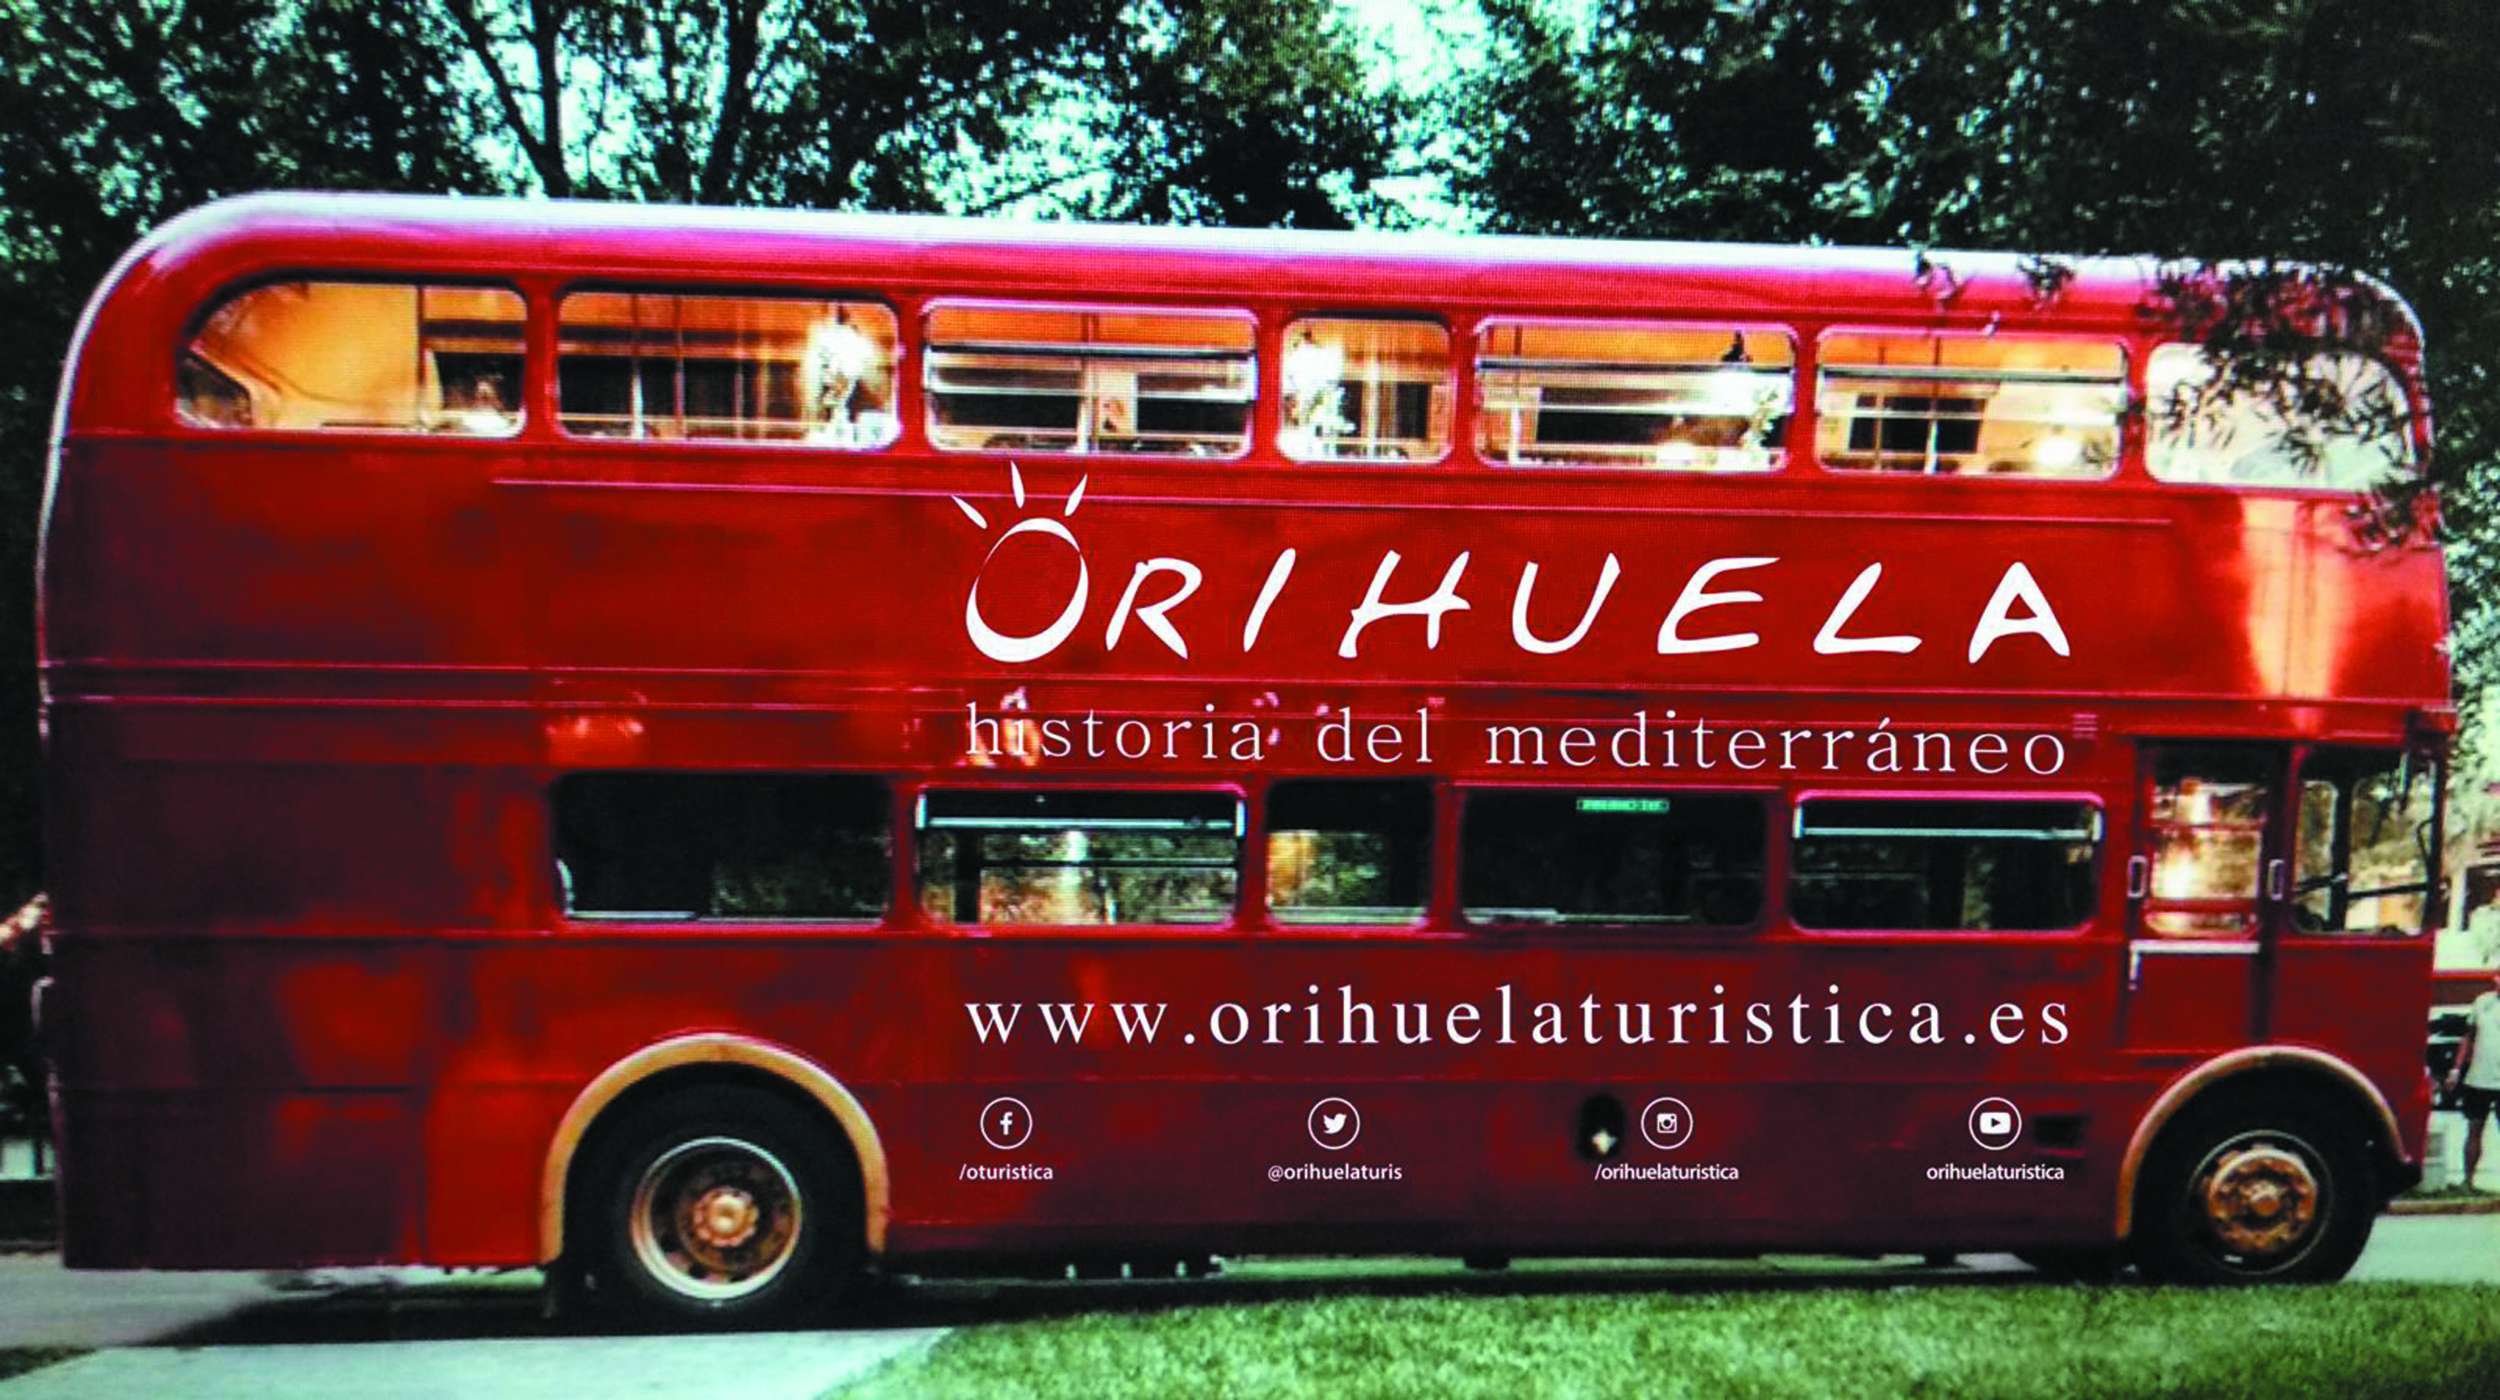 An English tourist bus liveried with the Orihuela brand driving around the centre of Madrid